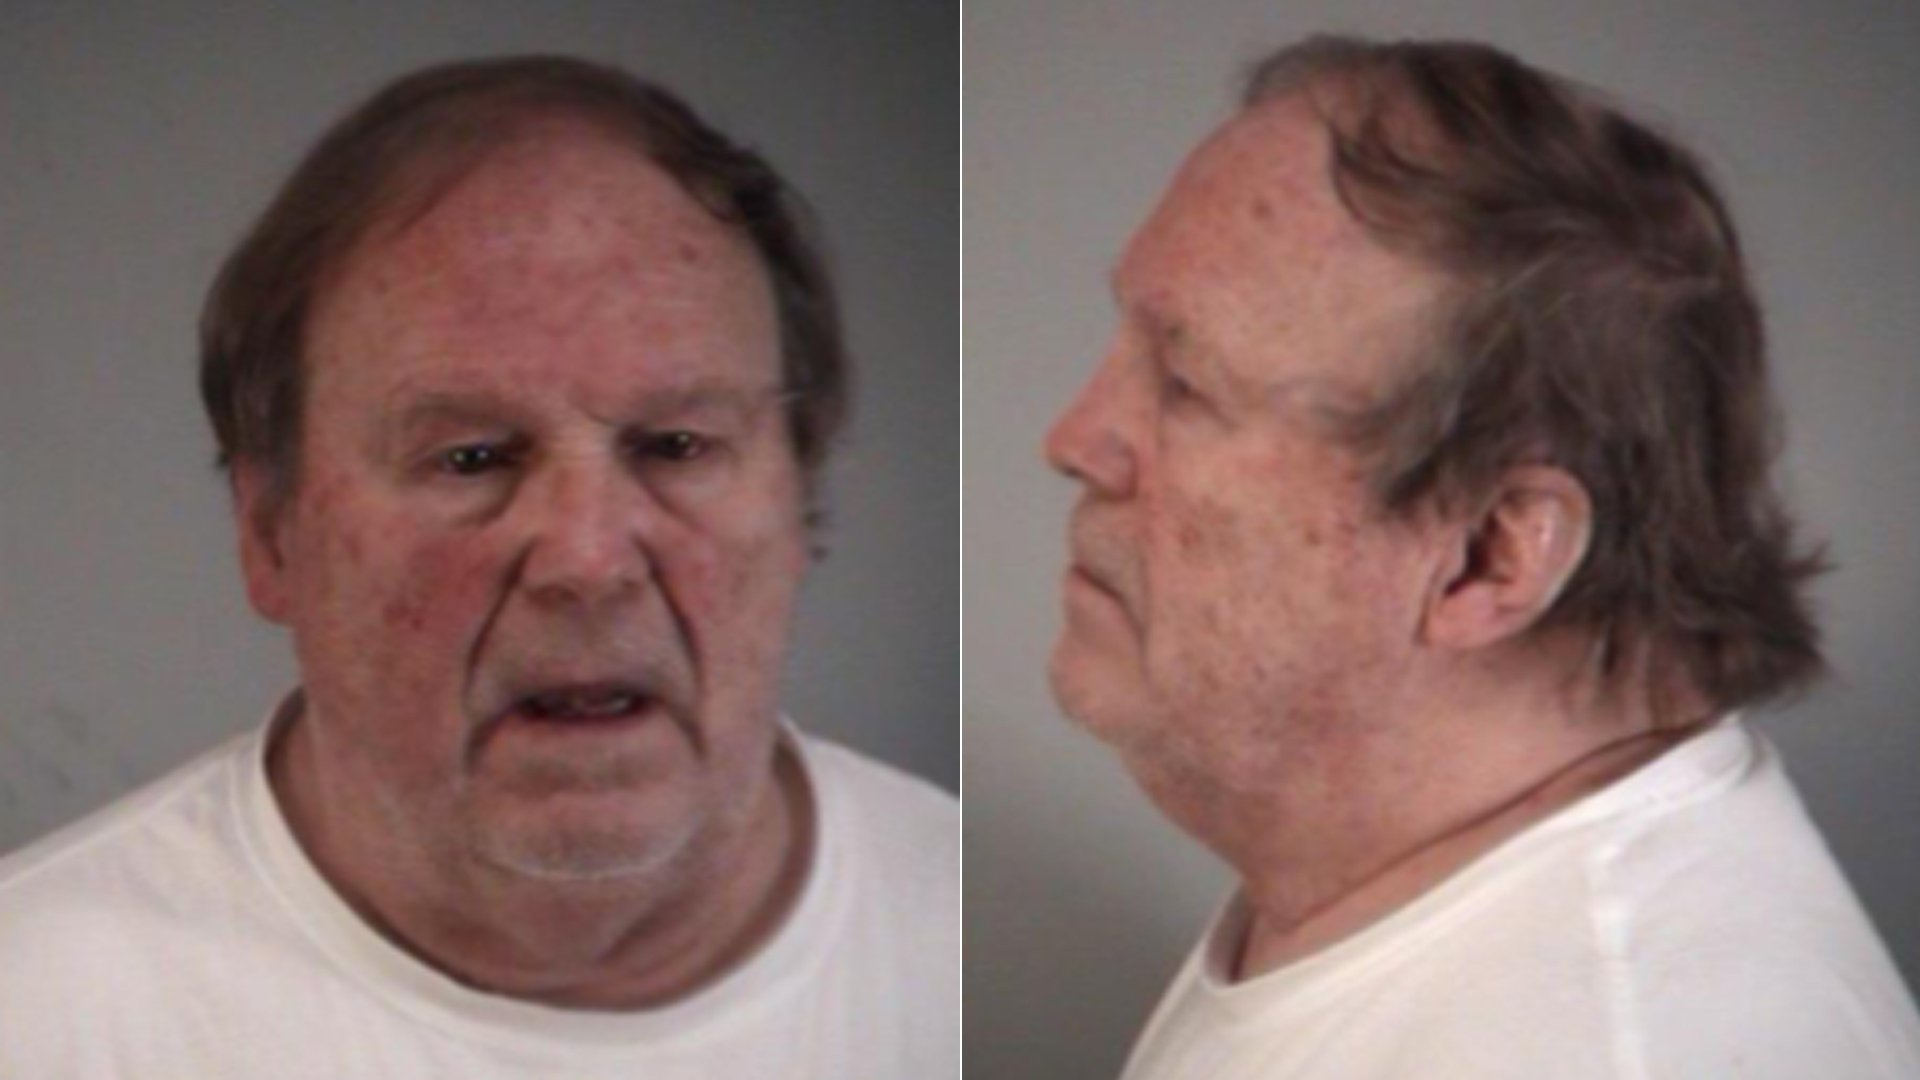 Wolfgang Halbig is shown in a photo released by the Lake County Sheriff's Office in Florida on Jan. 27, 2020.